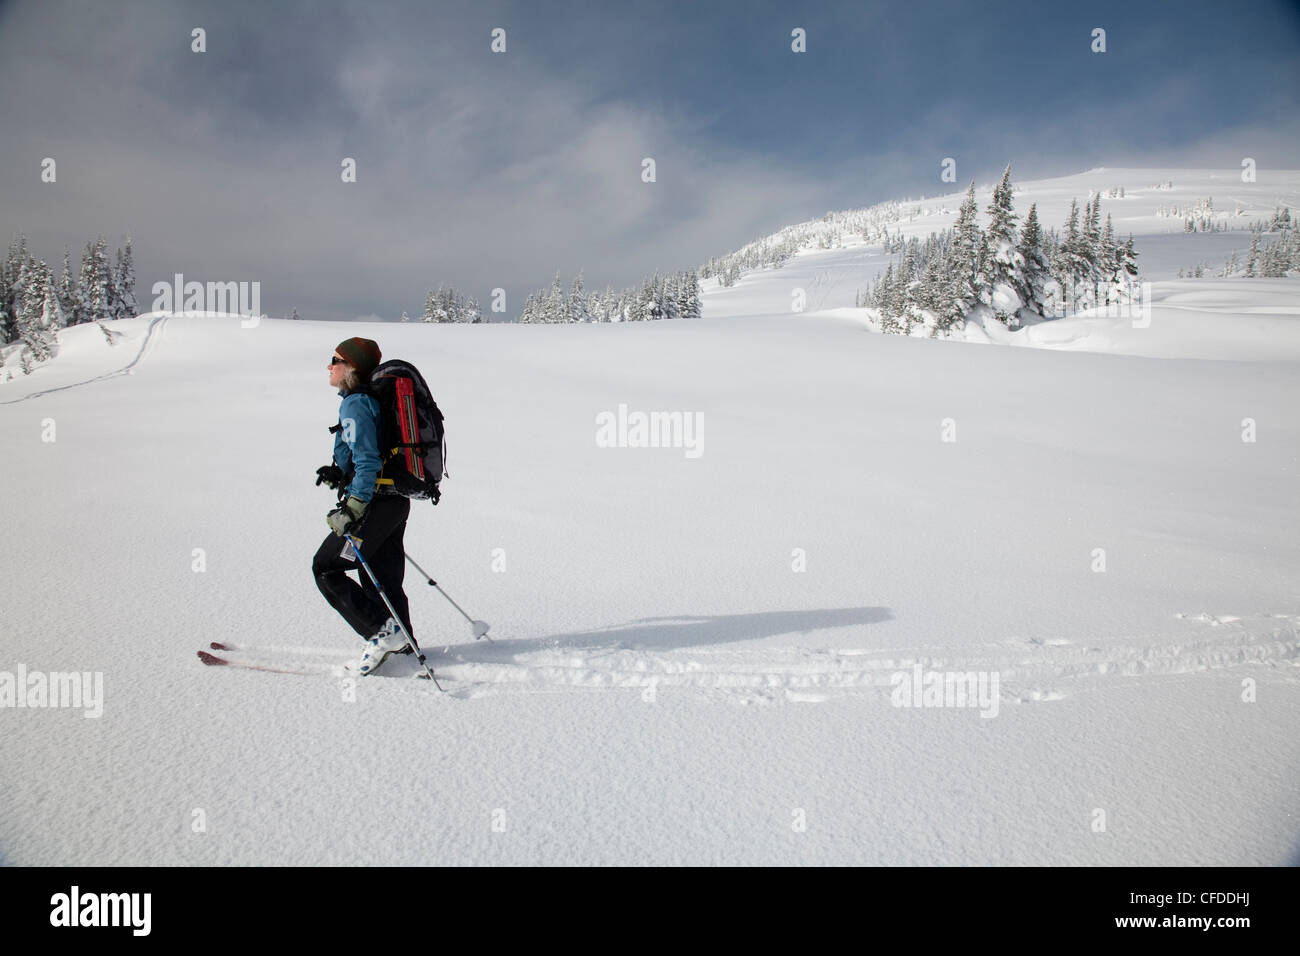 A female backcountry skier breaks trail through the snow. - Stock Image